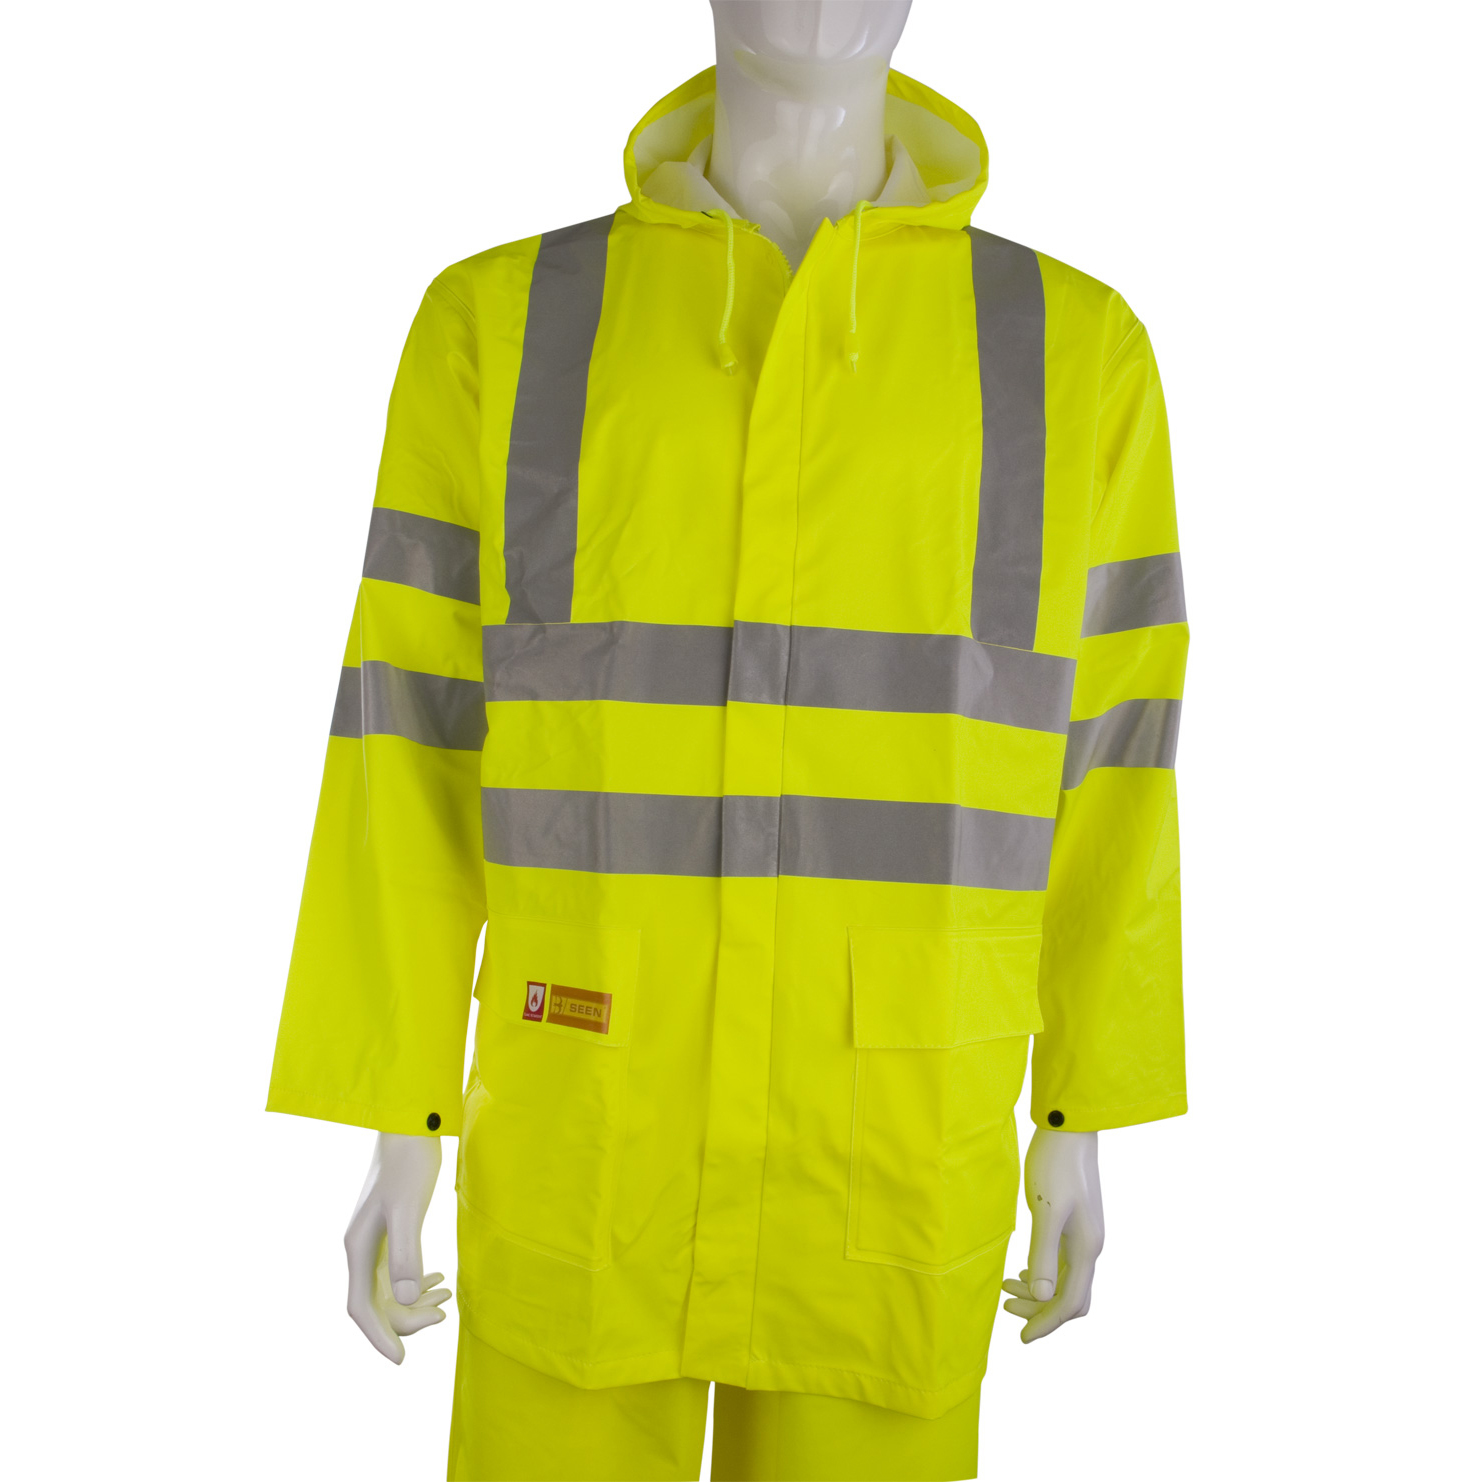 B-Seen Fire Retardant Jacket Anti-static 5XL Sat Yellow Ref CFRLR55SY5XL Up to 3 Day Leadtime